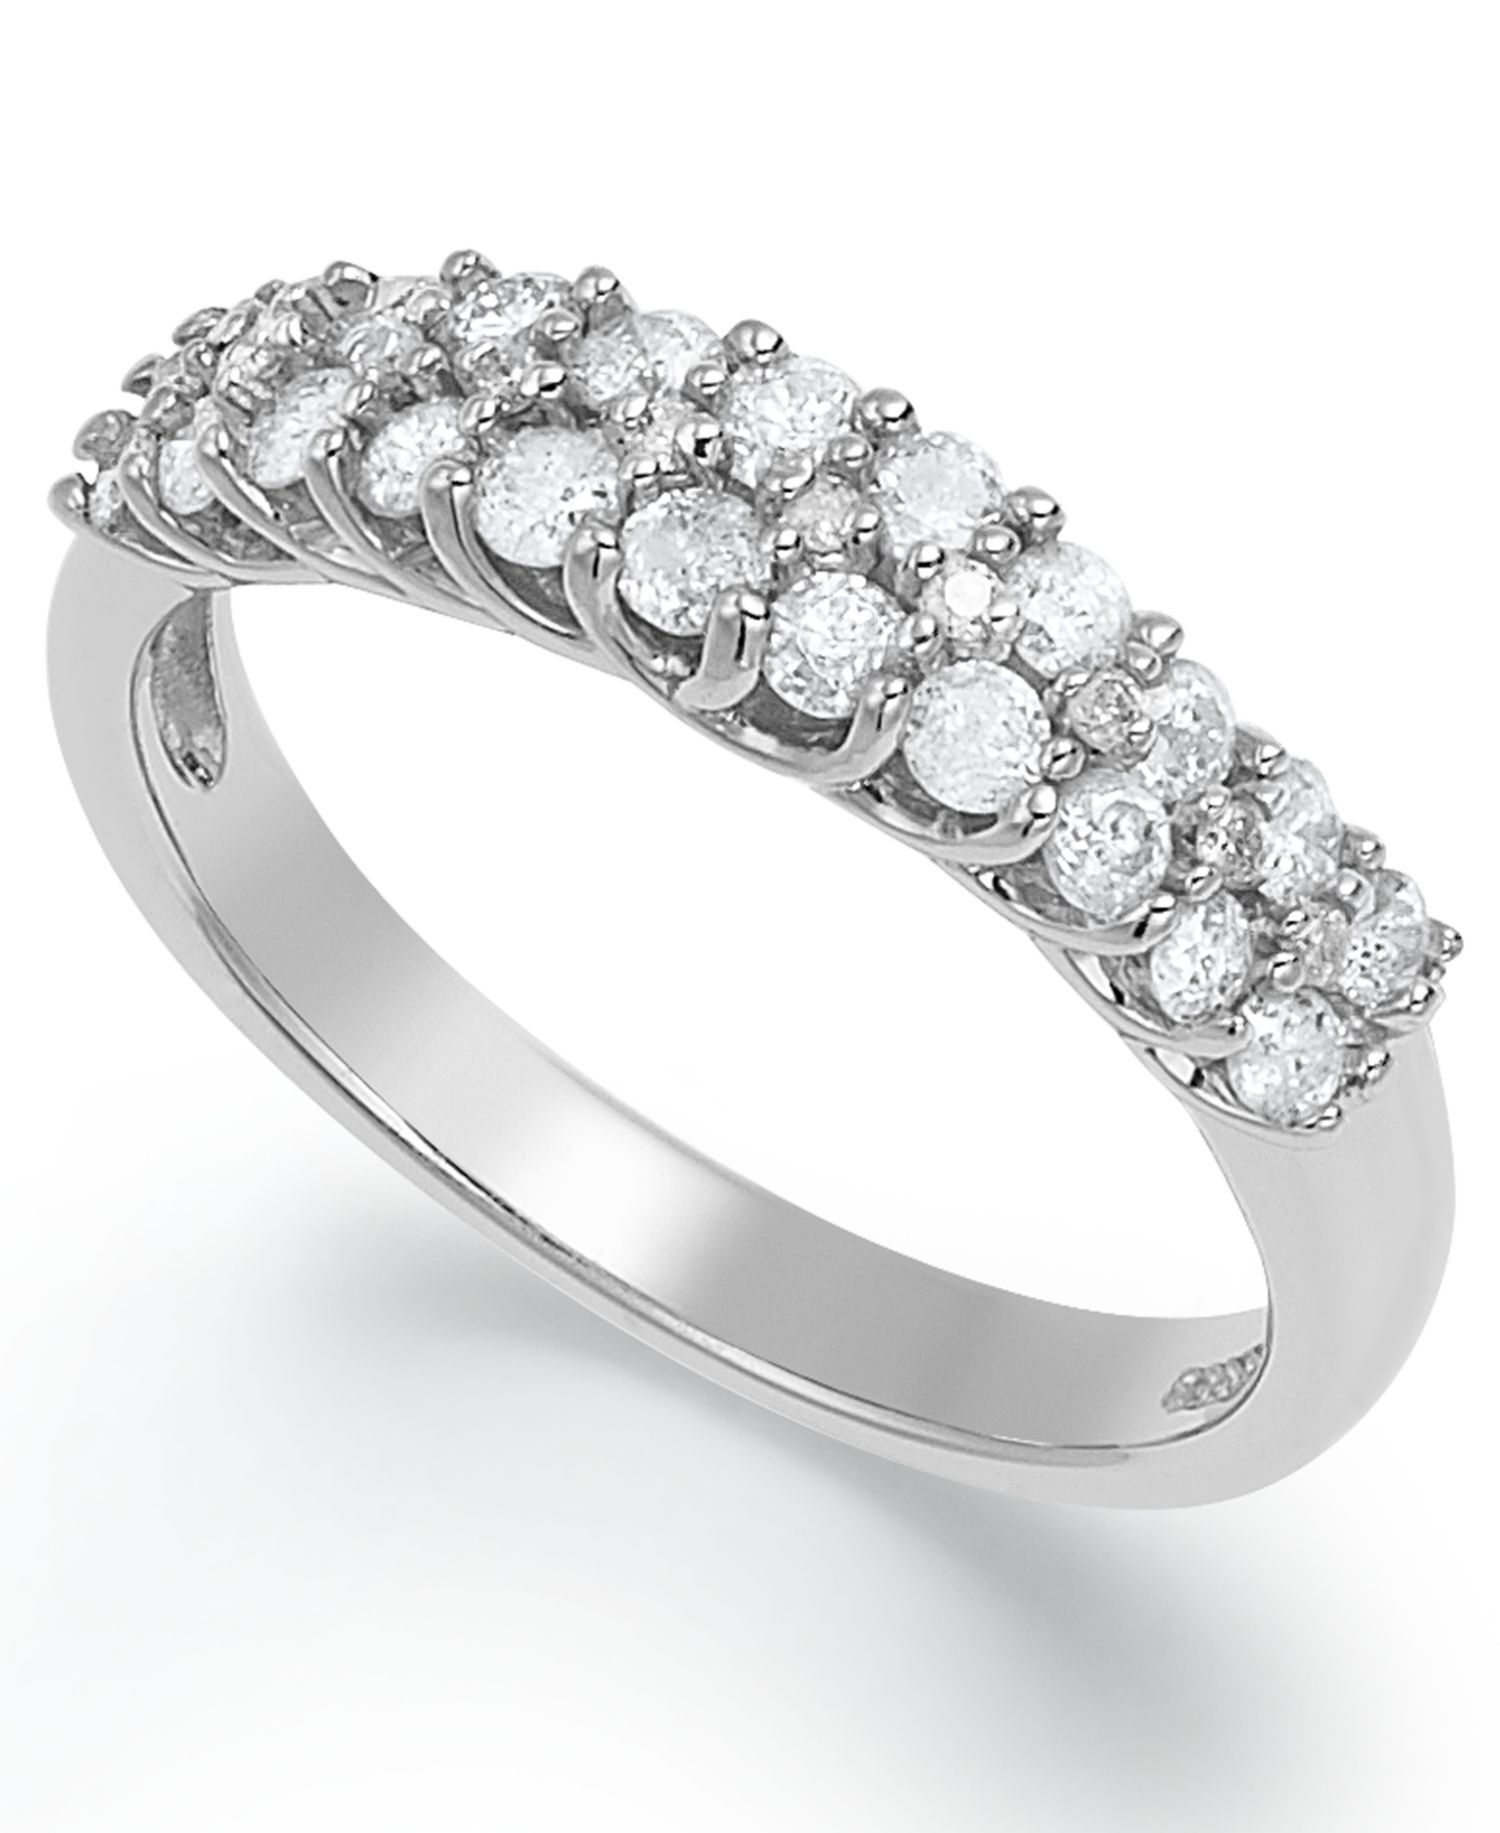 Certified Round Cut Diamond Two Row Wedding Band Ring In Throughout Newest Diamond Two Row Anniversary Bands In Sterling Silver (View 6 of 25)